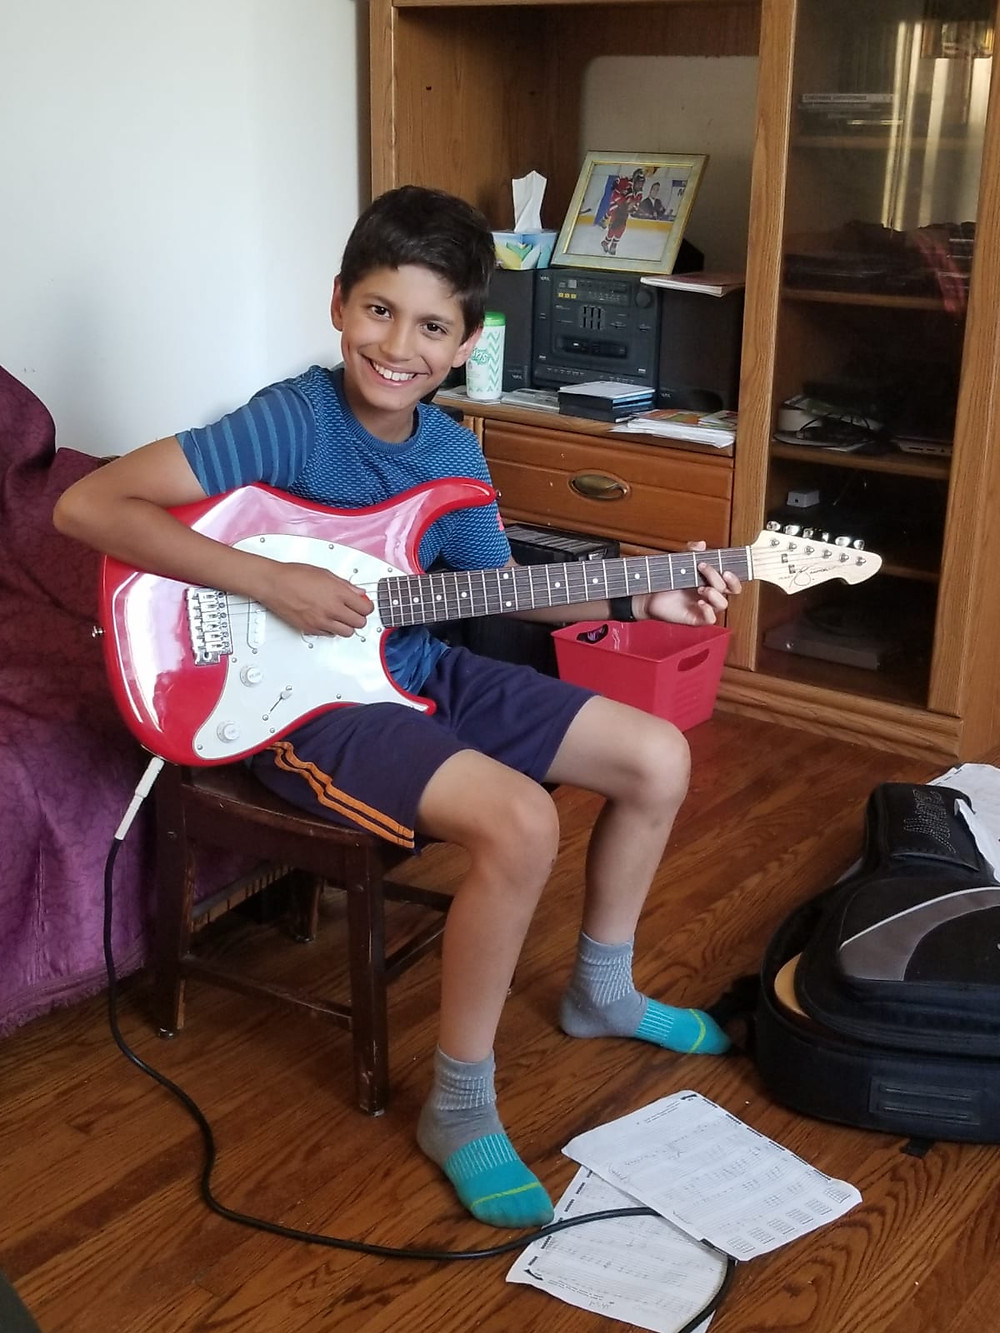 A surprise visit from Guitars For Kids Toronto brought a huge smile to 11 year old Erik.  This talented AC/DC fan immediately plugged in his new guitar and amplifier and started to play his new guitar. Arik's  big brother from Big Brothers Big Sisters Toronto who also plays guitar signed up for our program and was put on a long waiting list.